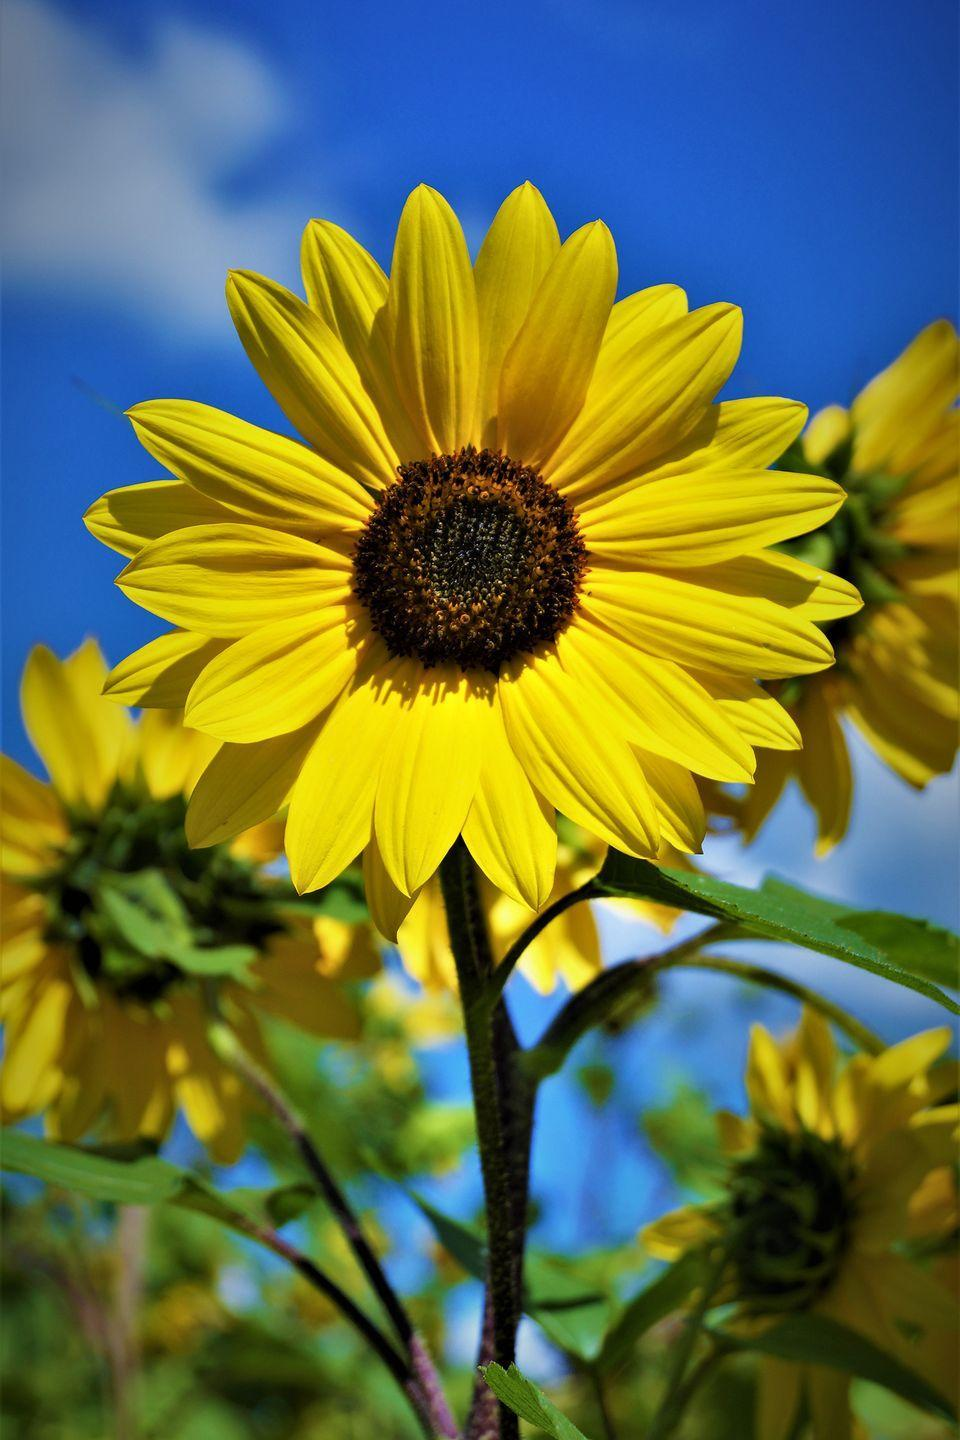 """<p>While you won't find miles and miles of sunflowers at the Longmont, Colorado, <a href=""""https://go.redirectingat.com?id=74968X1596630&url=https%3A%2F%2Fwww.tripadvisor.com%2FAttraction_Review-g33527-d7211676-Reviews-Sunflower_Farm-Longmont_Colorado.html&sref=https%3A%2F%2Fwww.countryliving.com%2Flife%2Ftravel%2Fg21937858%2Fsunflower-fields-near-me%2F"""" rel=""""nofollow noopener"""" target=""""_blank"""" data-ylk=""""slk:Sunflower Farm"""" class=""""link rapid-noclick-resp"""">Sunflower Farm</a>, you will find several sunflower patches to behold, along with a variety of other kid-friendly farm activities and plenty of farm animals to see.</p><p><a class=""""link rapid-noclick-resp"""" href=""""https://go.redirectingat.com?id=74968X1596630&url=https%3A%2F%2Fwww.tripadvisor.com%2FTourism-g33527-Longmont_Colorado-Vacations.html&sref=https%3A%2F%2Fwww.countryliving.com%2Flife%2Ftravel%2Fg21937858%2Fsunflower-fields-near-me%2F"""" rel=""""nofollow noopener"""" target=""""_blank"""" data-ylk=""""slk:PLAN YOUR TRIP"""">PLAN YOUR TRIP</a></p>"""